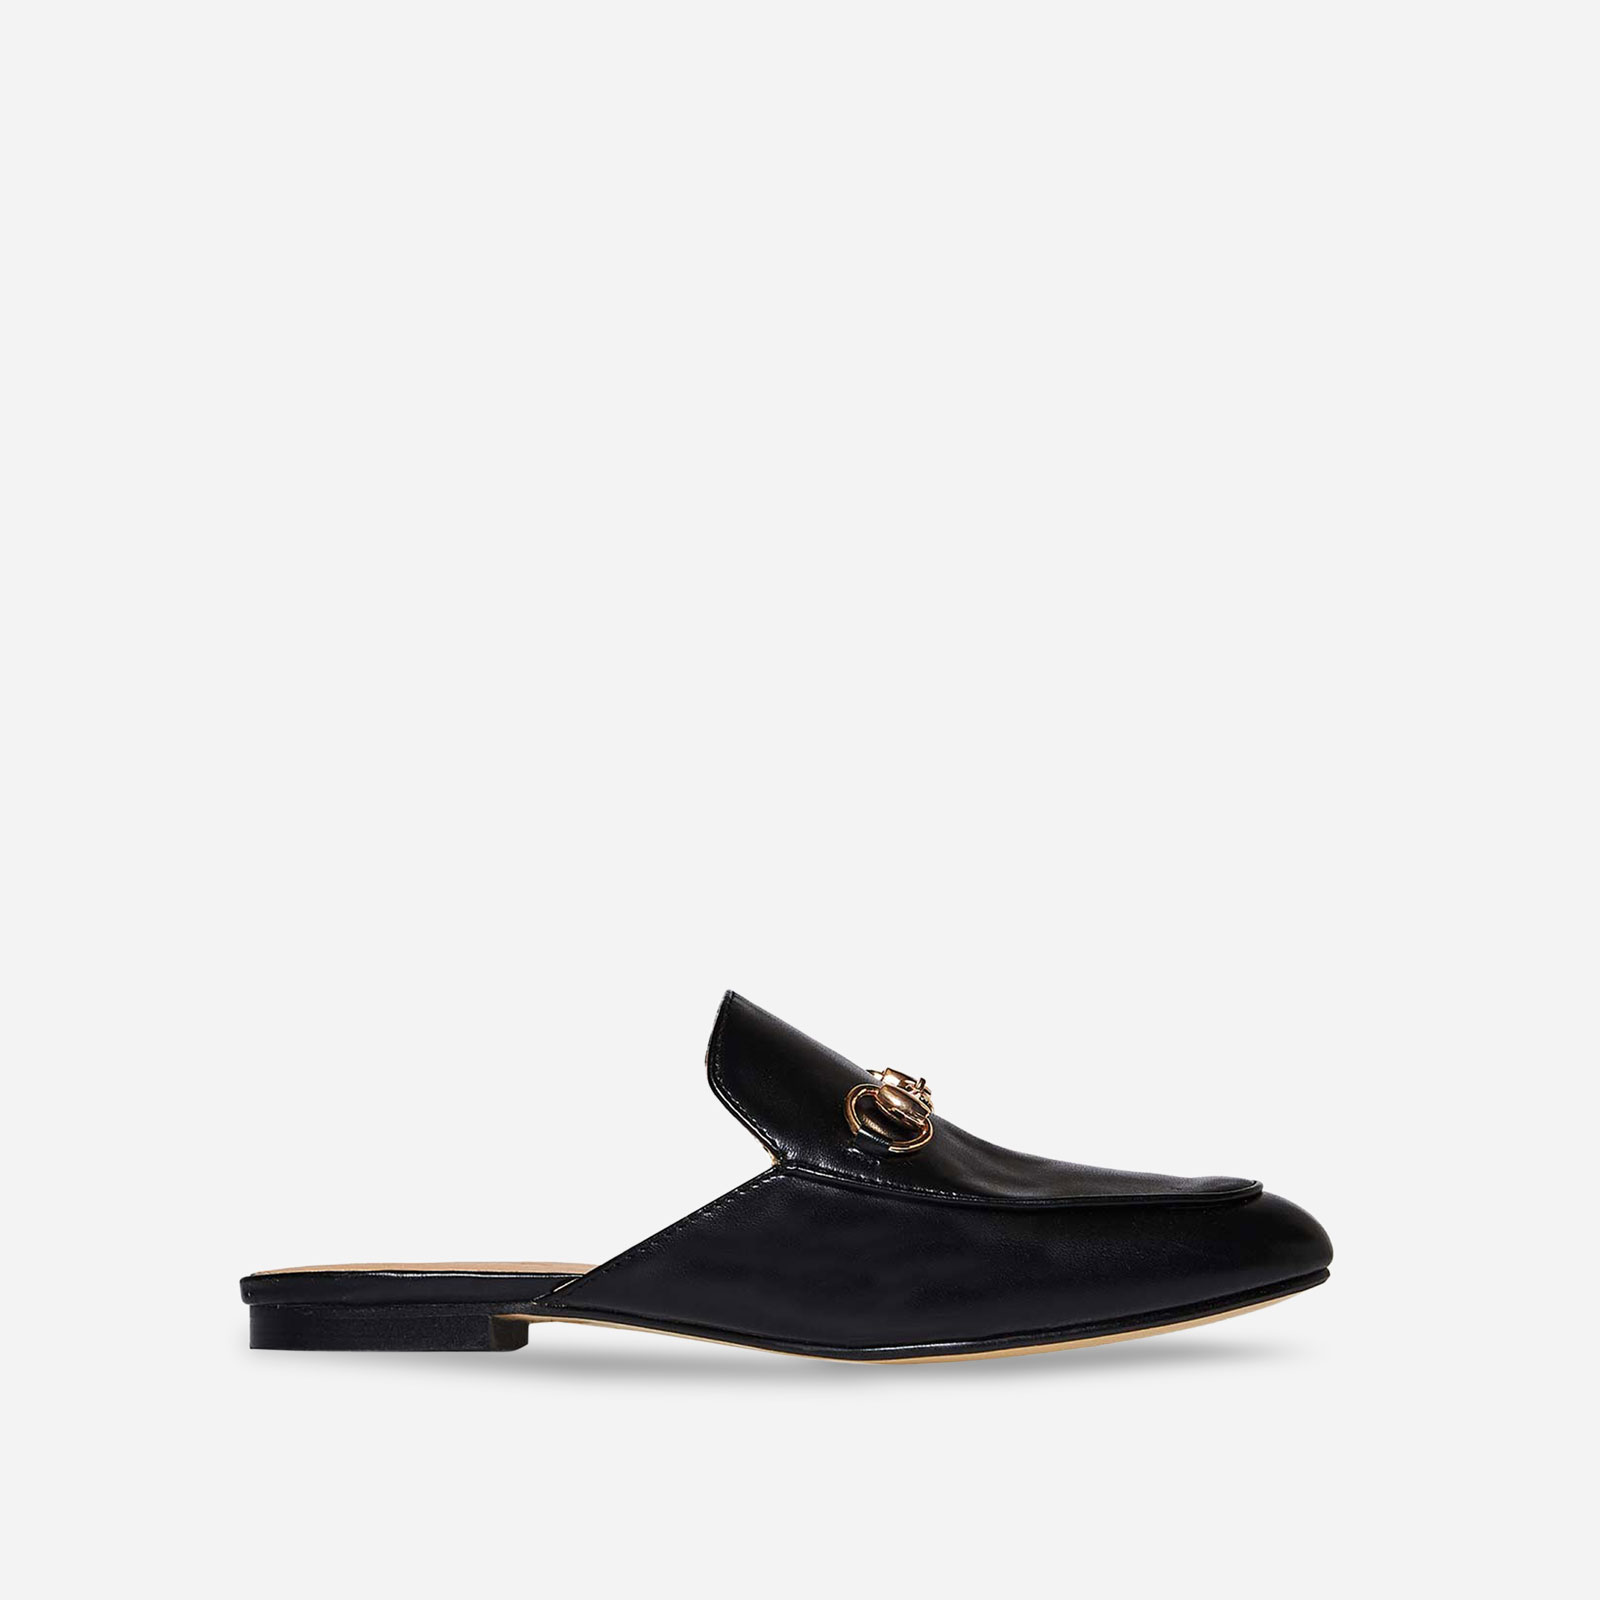 Miley Flat Mule In Black Faux Leather Image 1